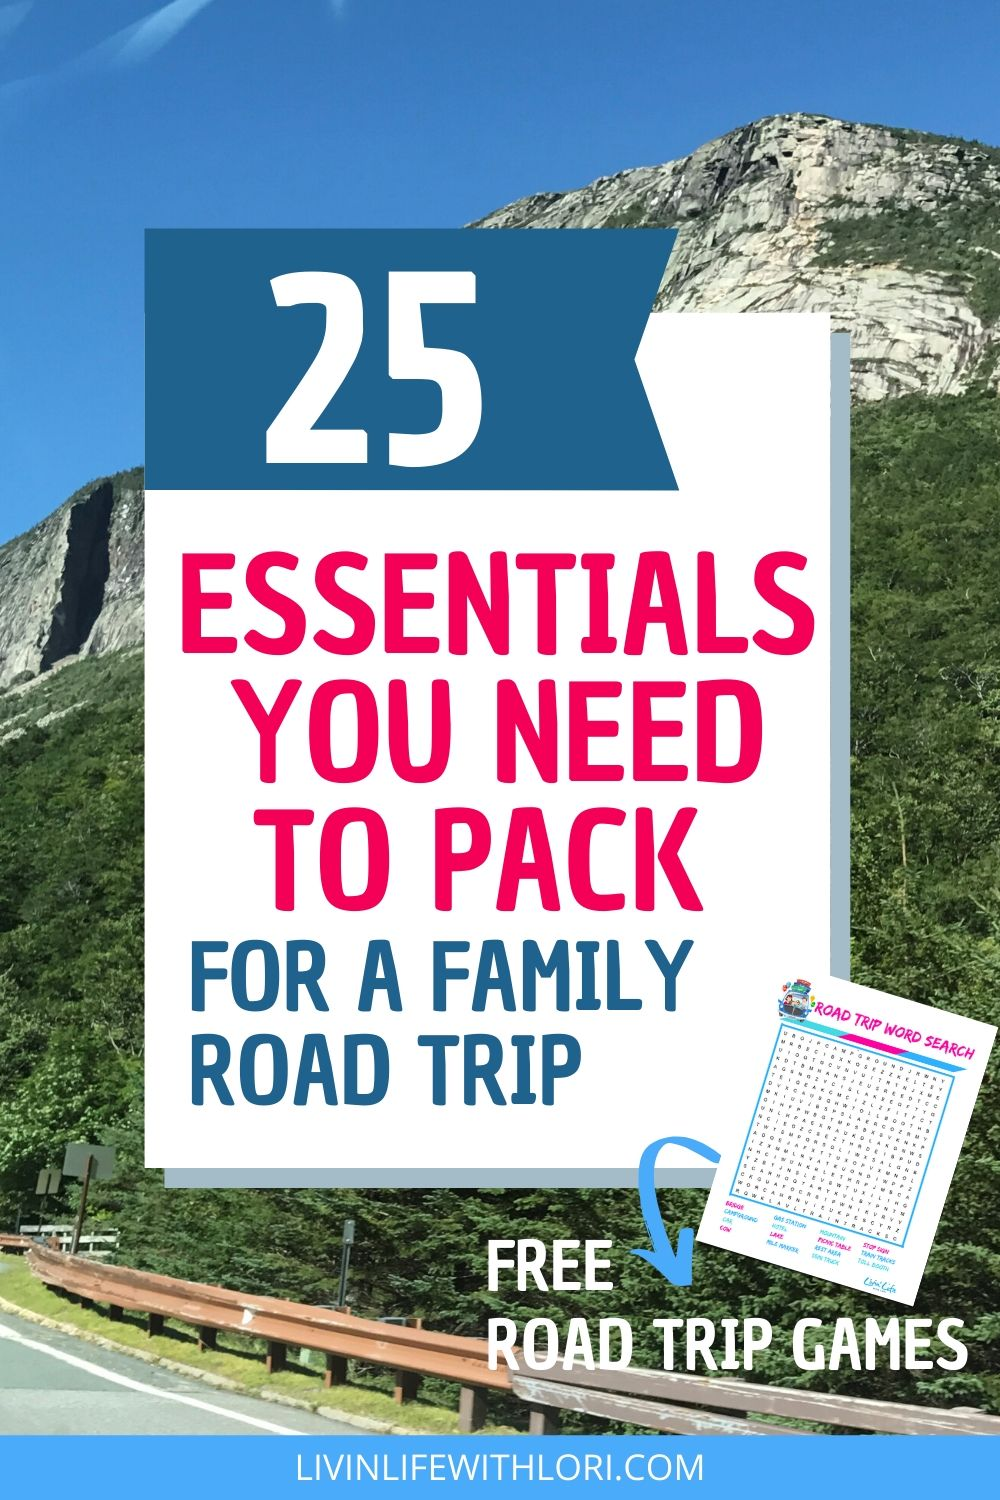 25 Trips Of A Lifetime With Images: Top 25 Road Trip Essentials